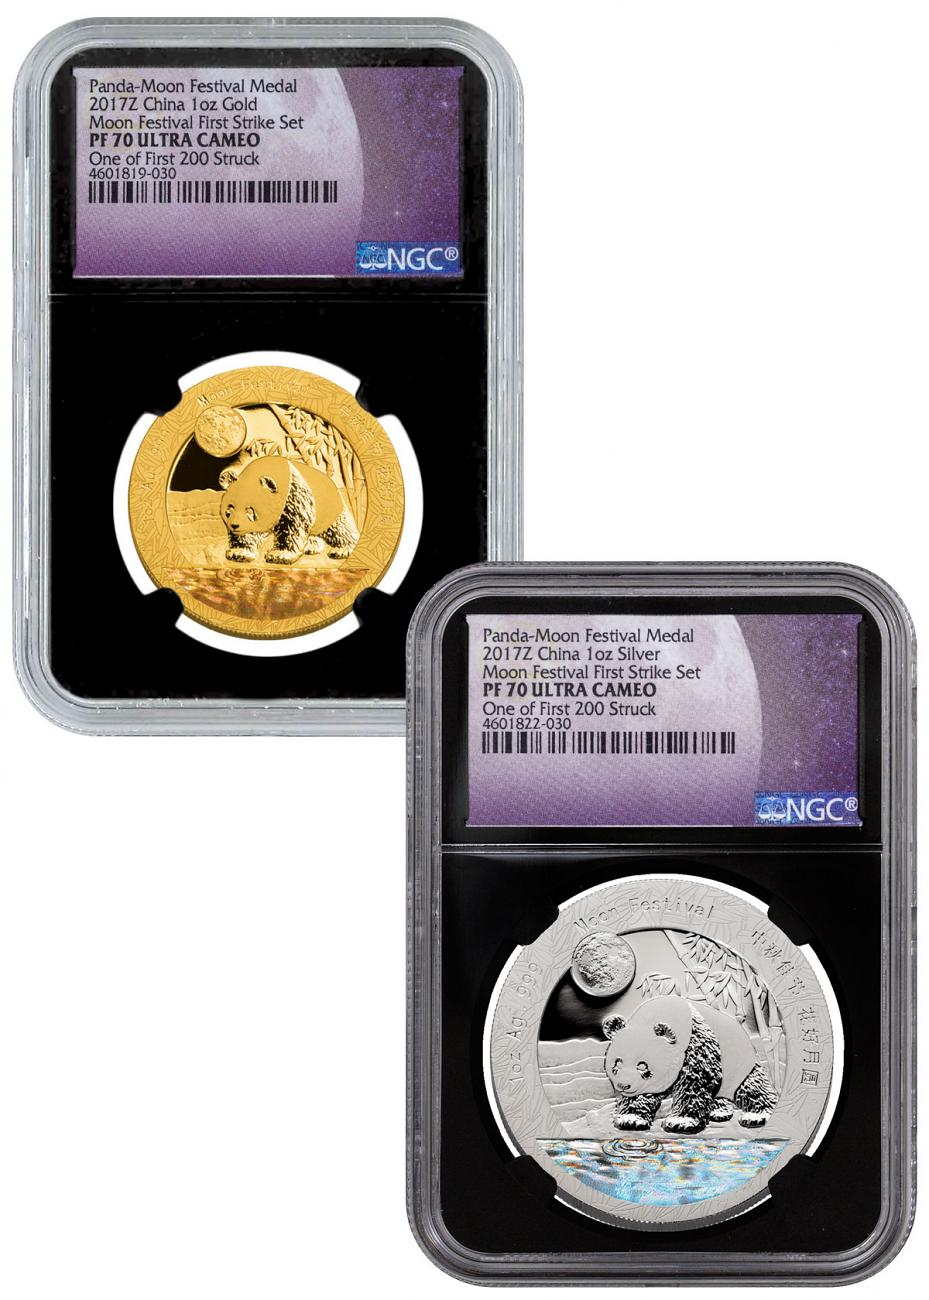 2-Piece Set - 2017-Z China Gold and Silver Moon Festival NGC PF70 One of First 200 Struck Mint Display Box